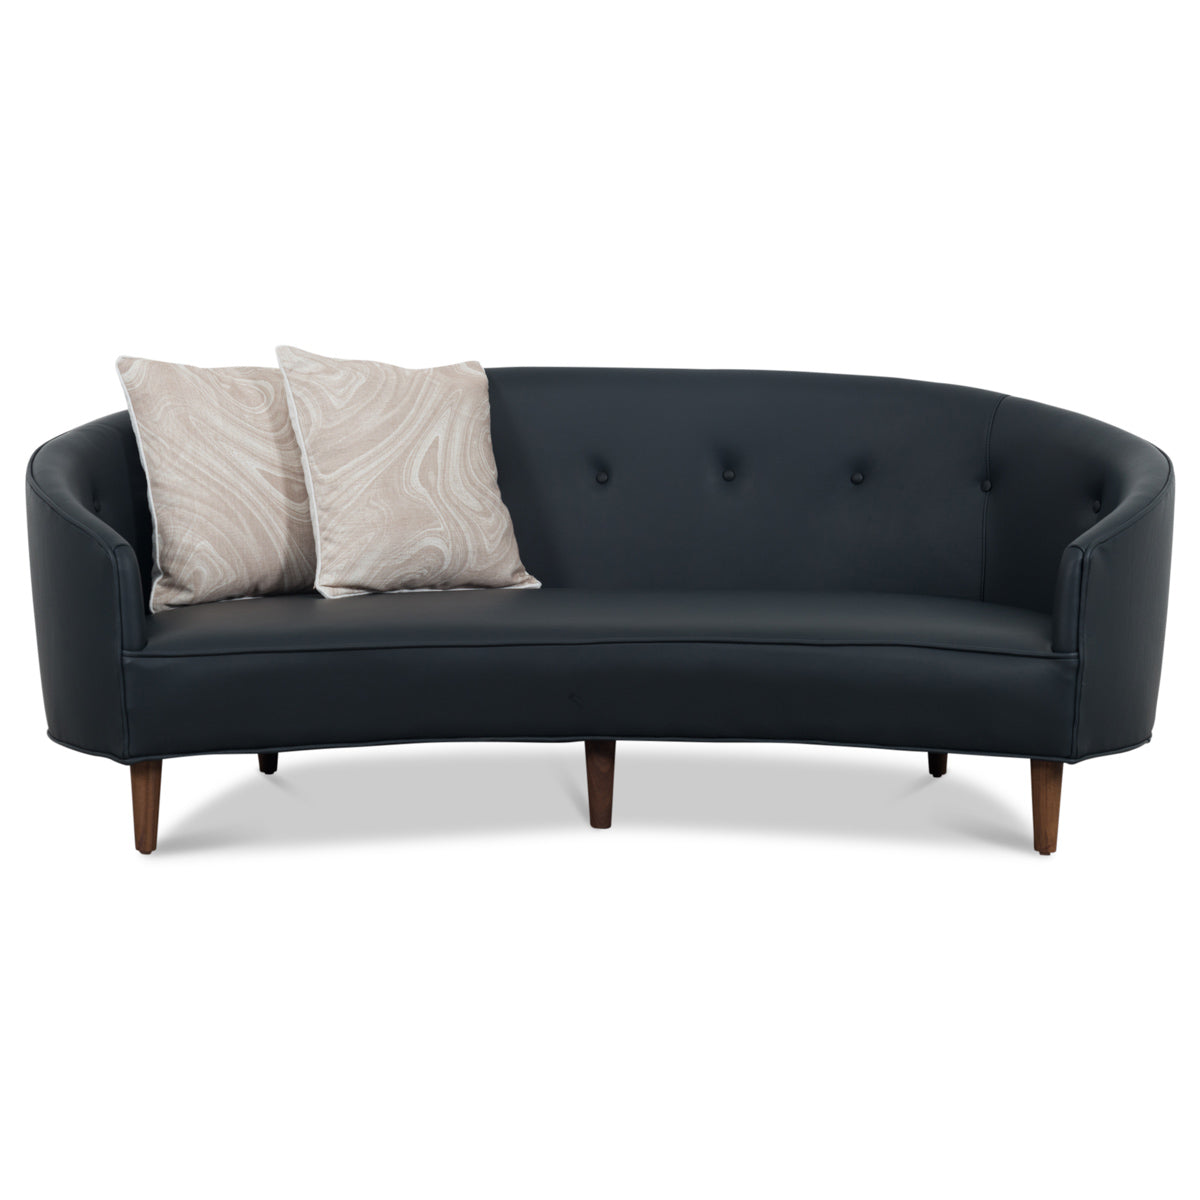 Art Deco Petite Sofa in Leather - ModShop1.com